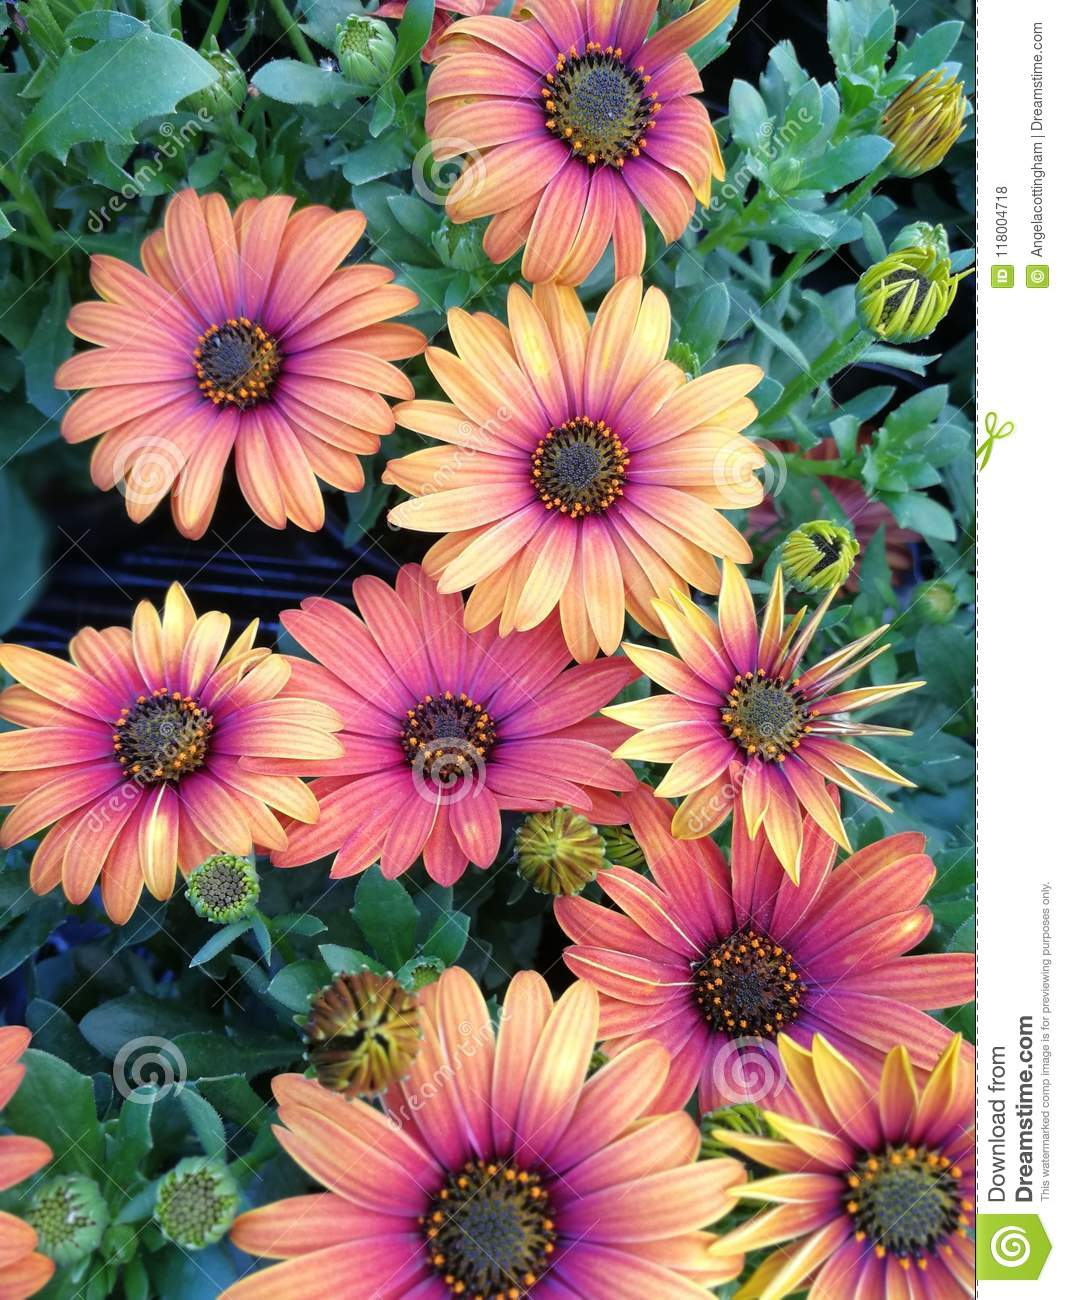 Yellow and purple osteospermum african daisy flowers stock photo bright yellow and purple african daisies osteospermum blooming with buds and green leaves izmirmasajfo